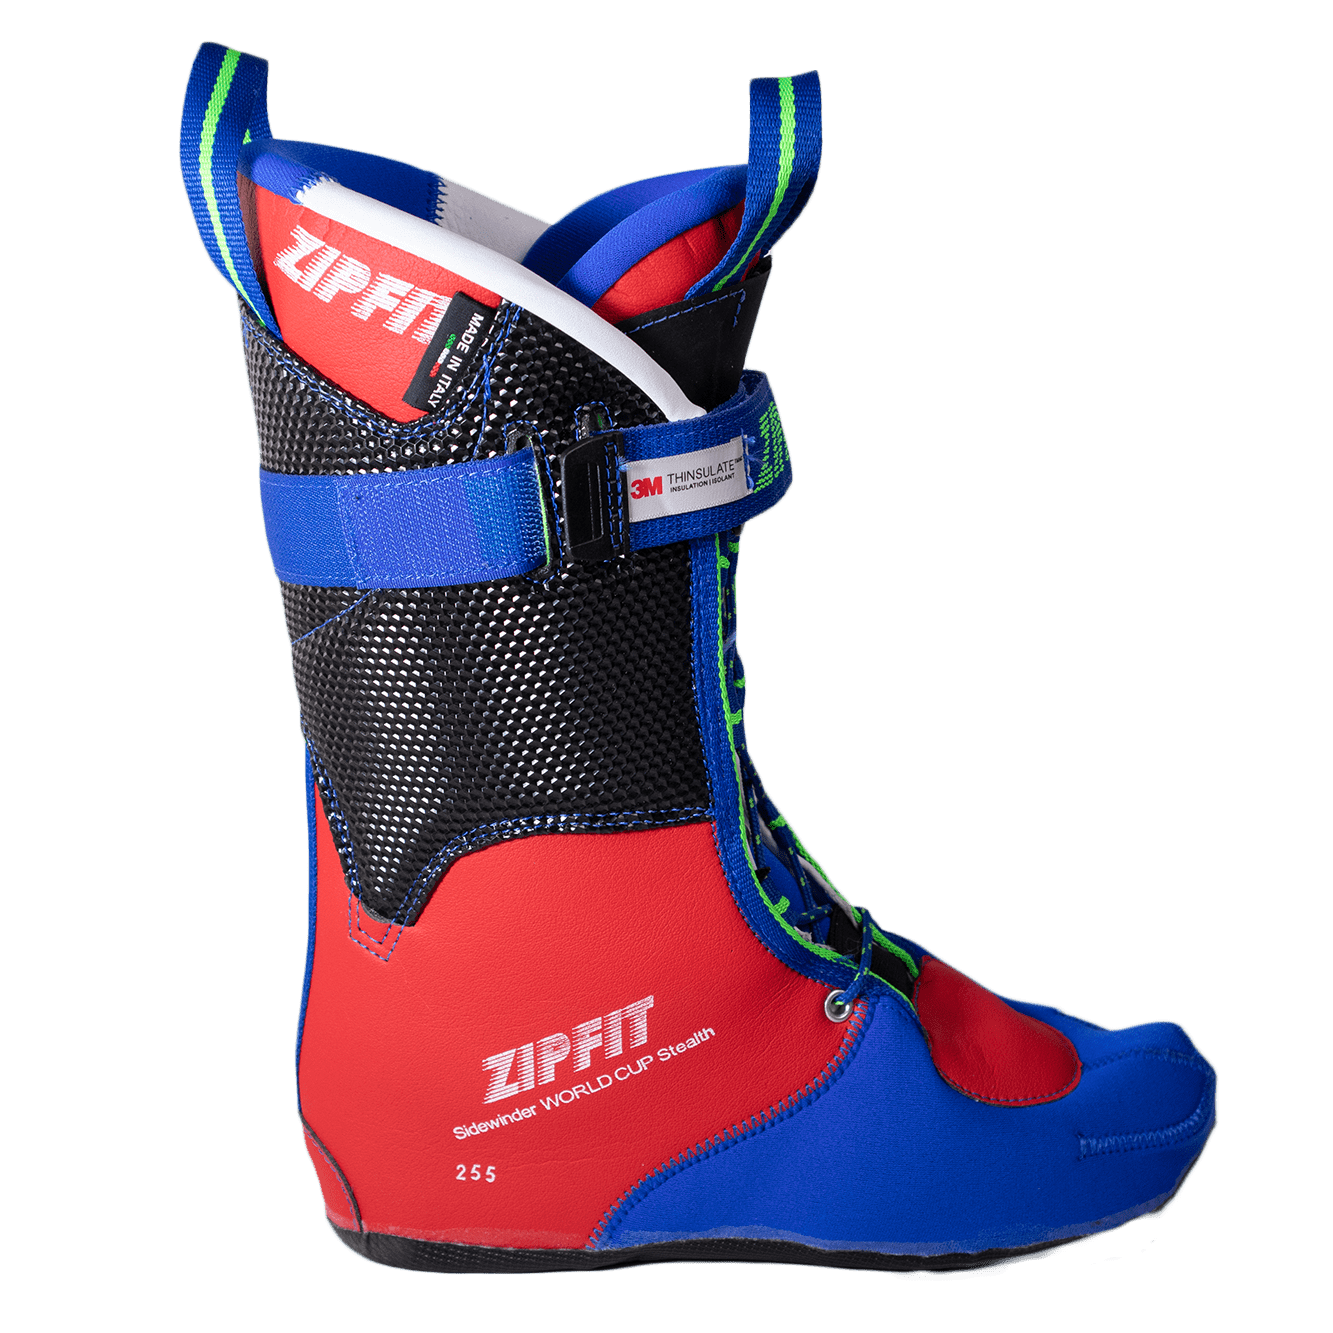 World Cup ski boot liners